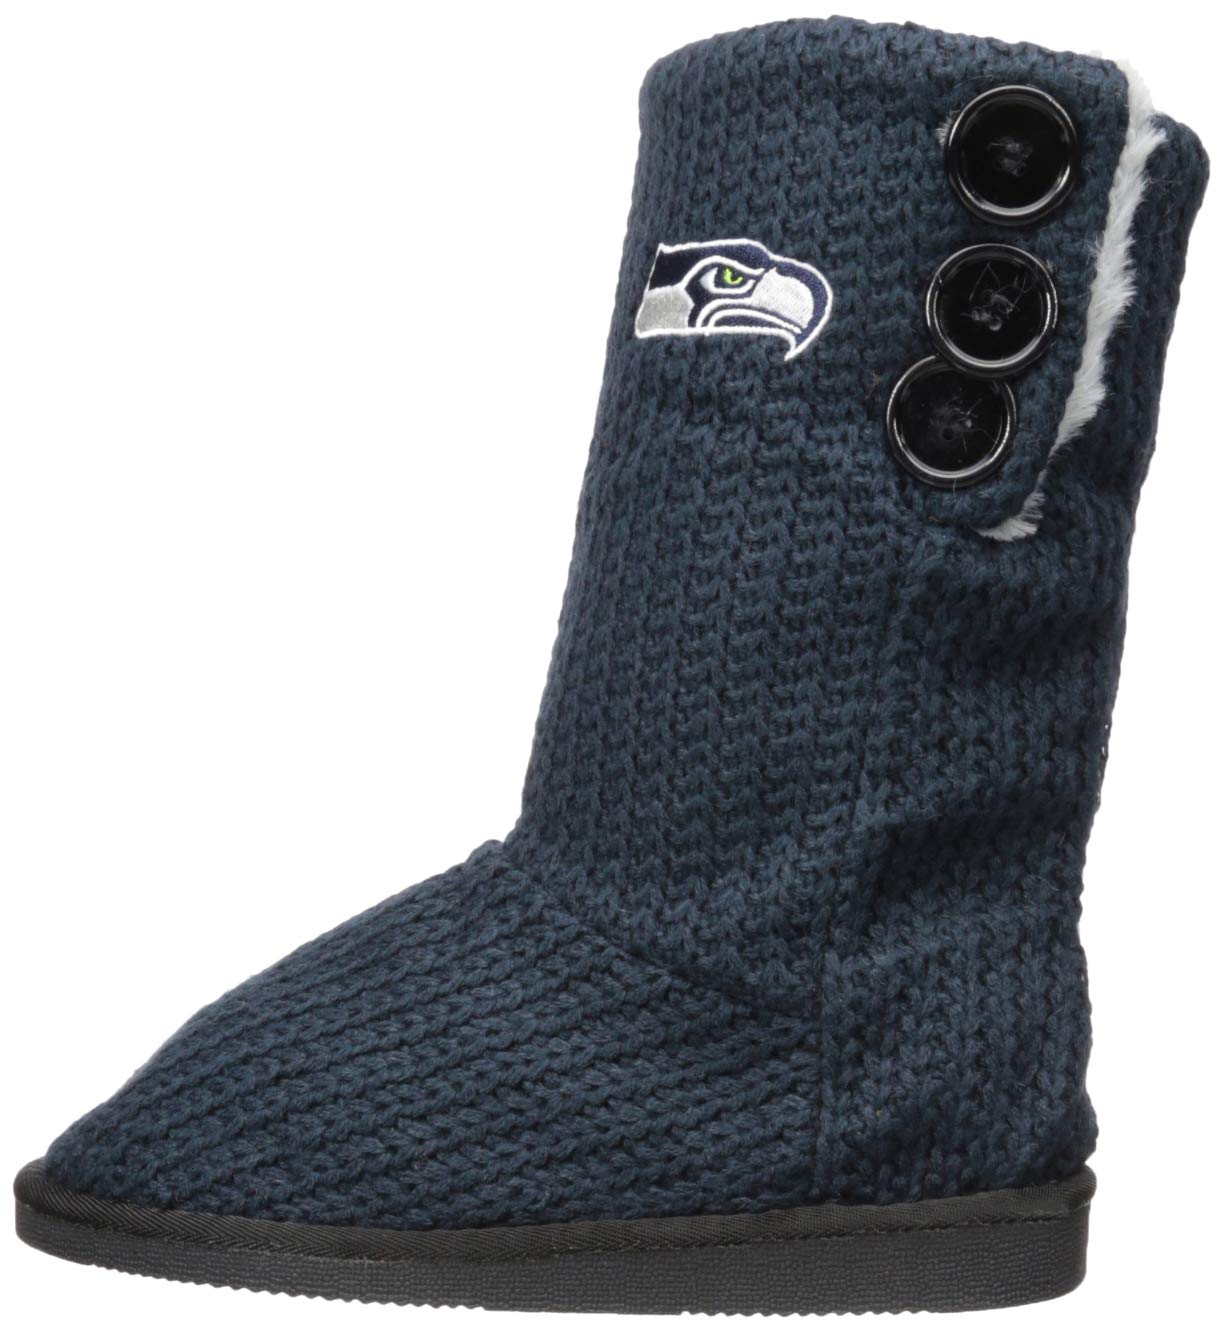 1ad6c048d73 Amazon.com   NFL Womens Knit Team Color High End Button Boot Slipper    Sports   Outdoors